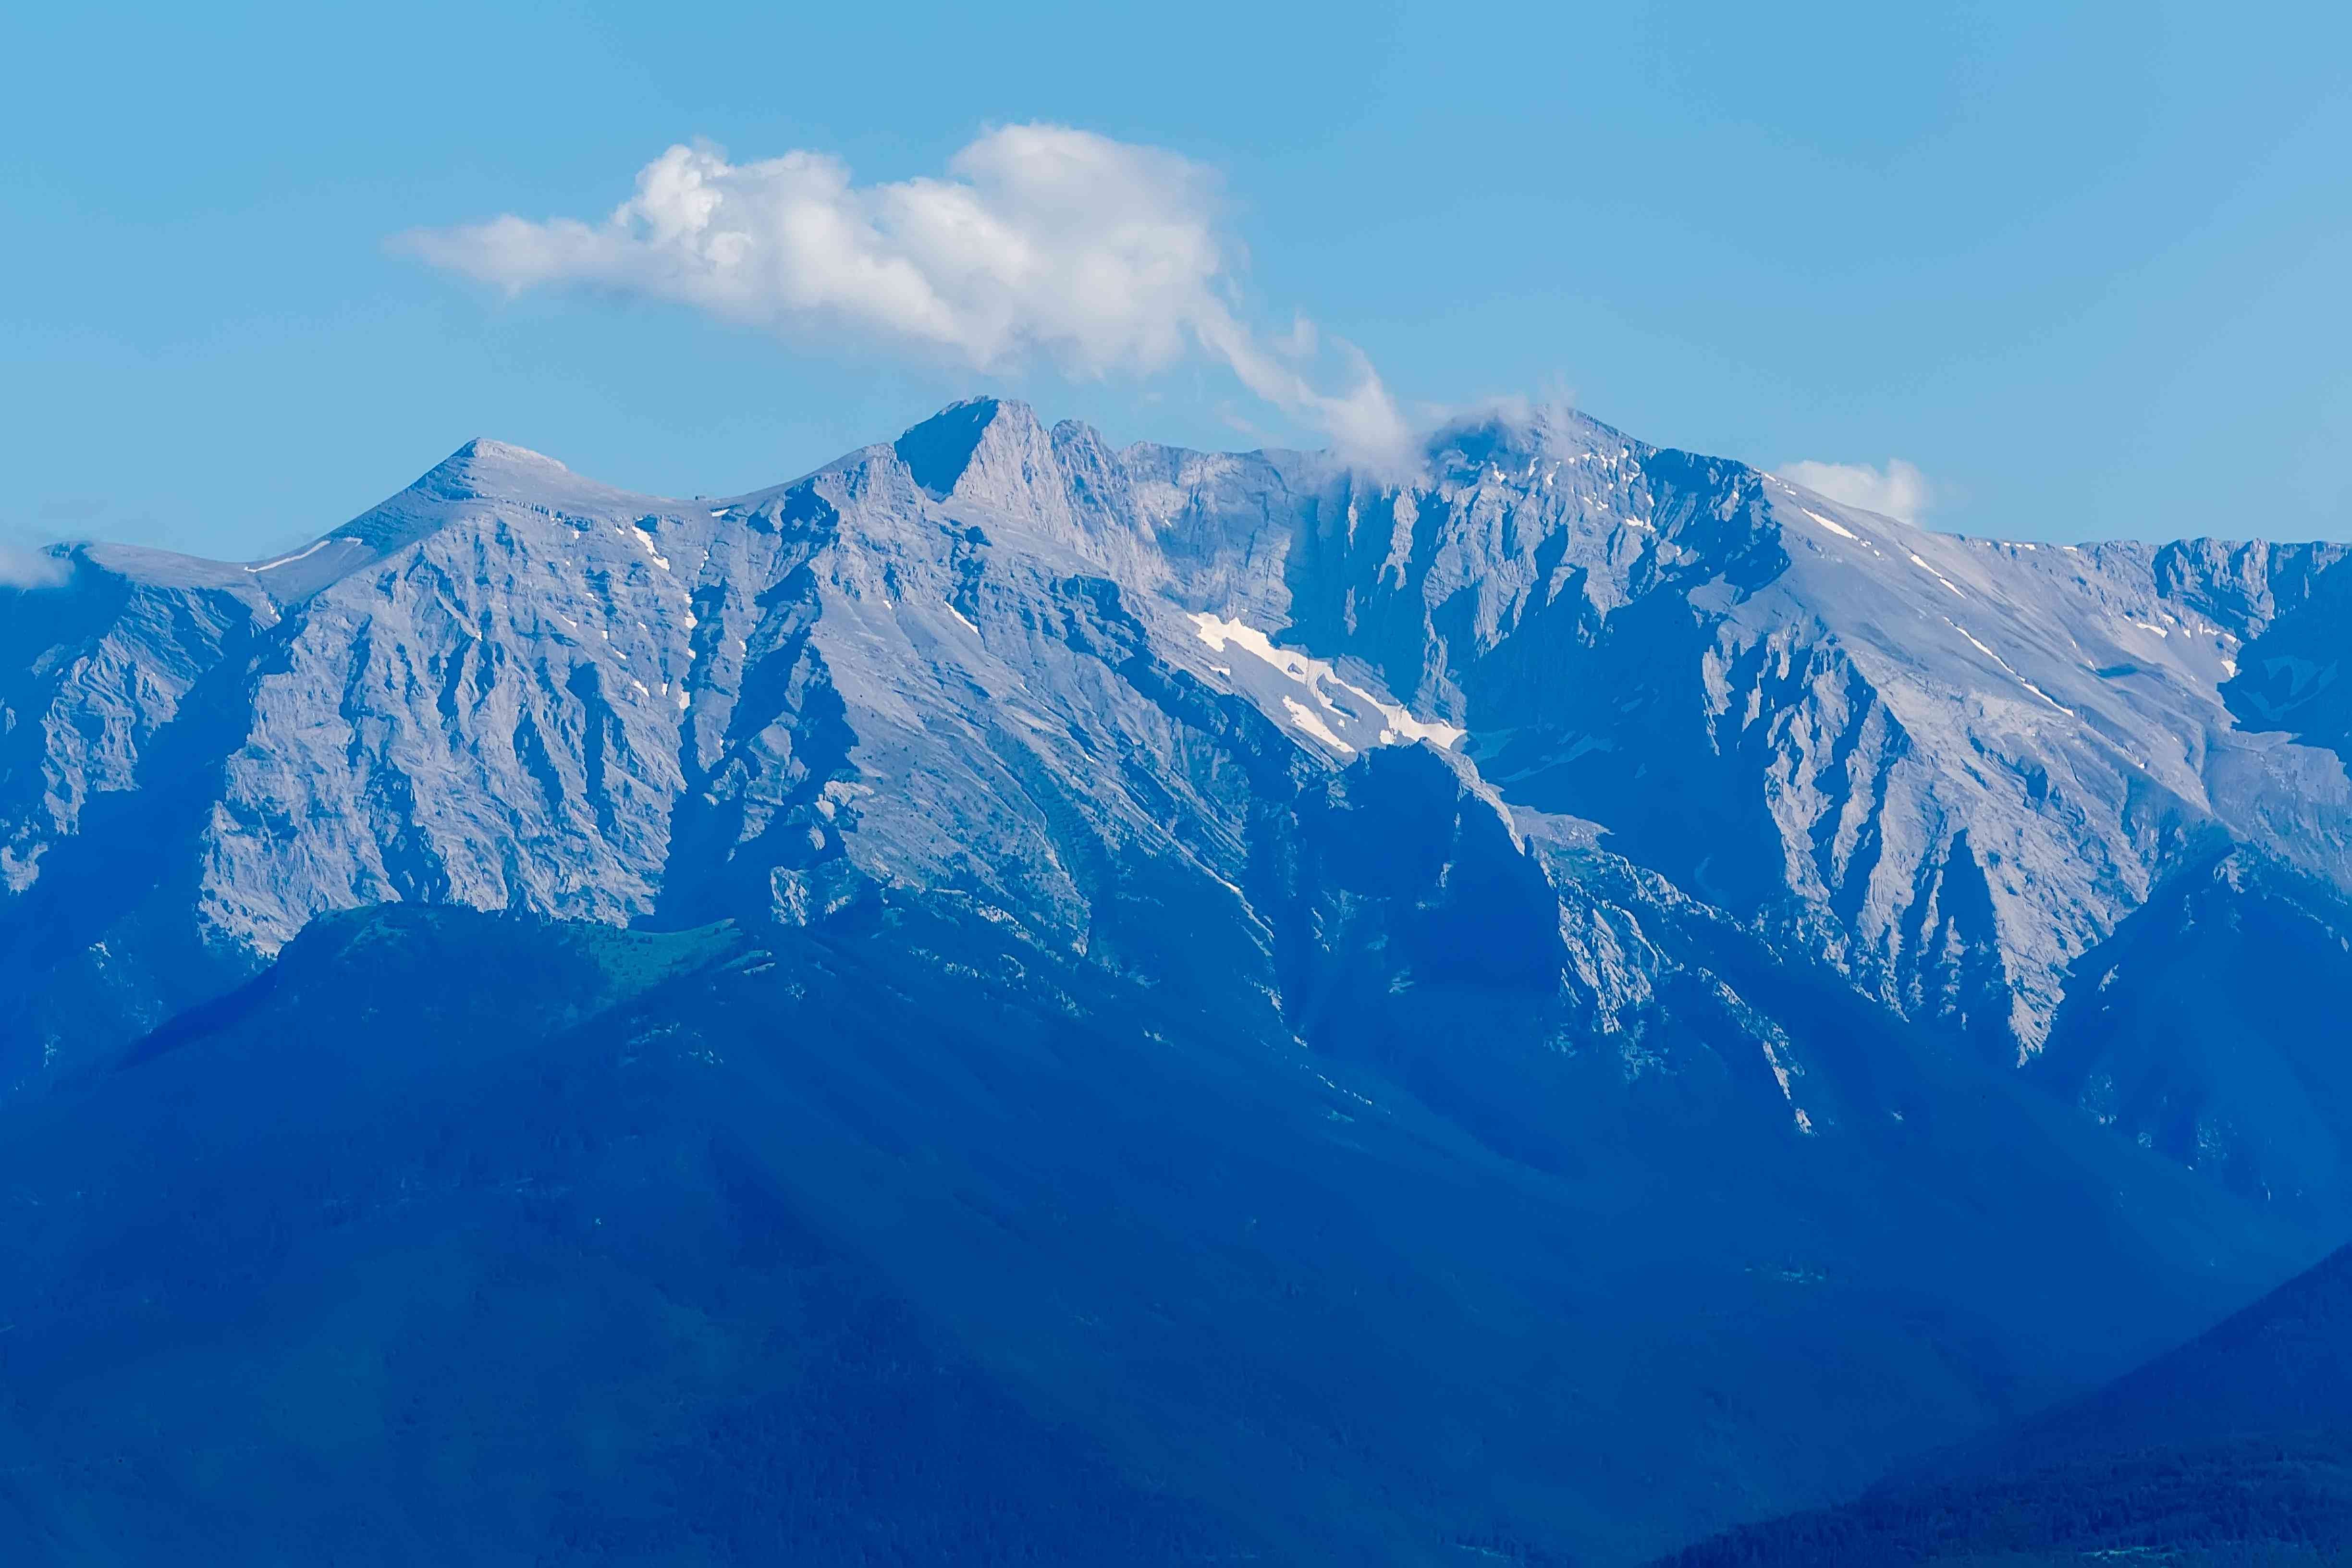 Mount Olympus on a blue-sky day